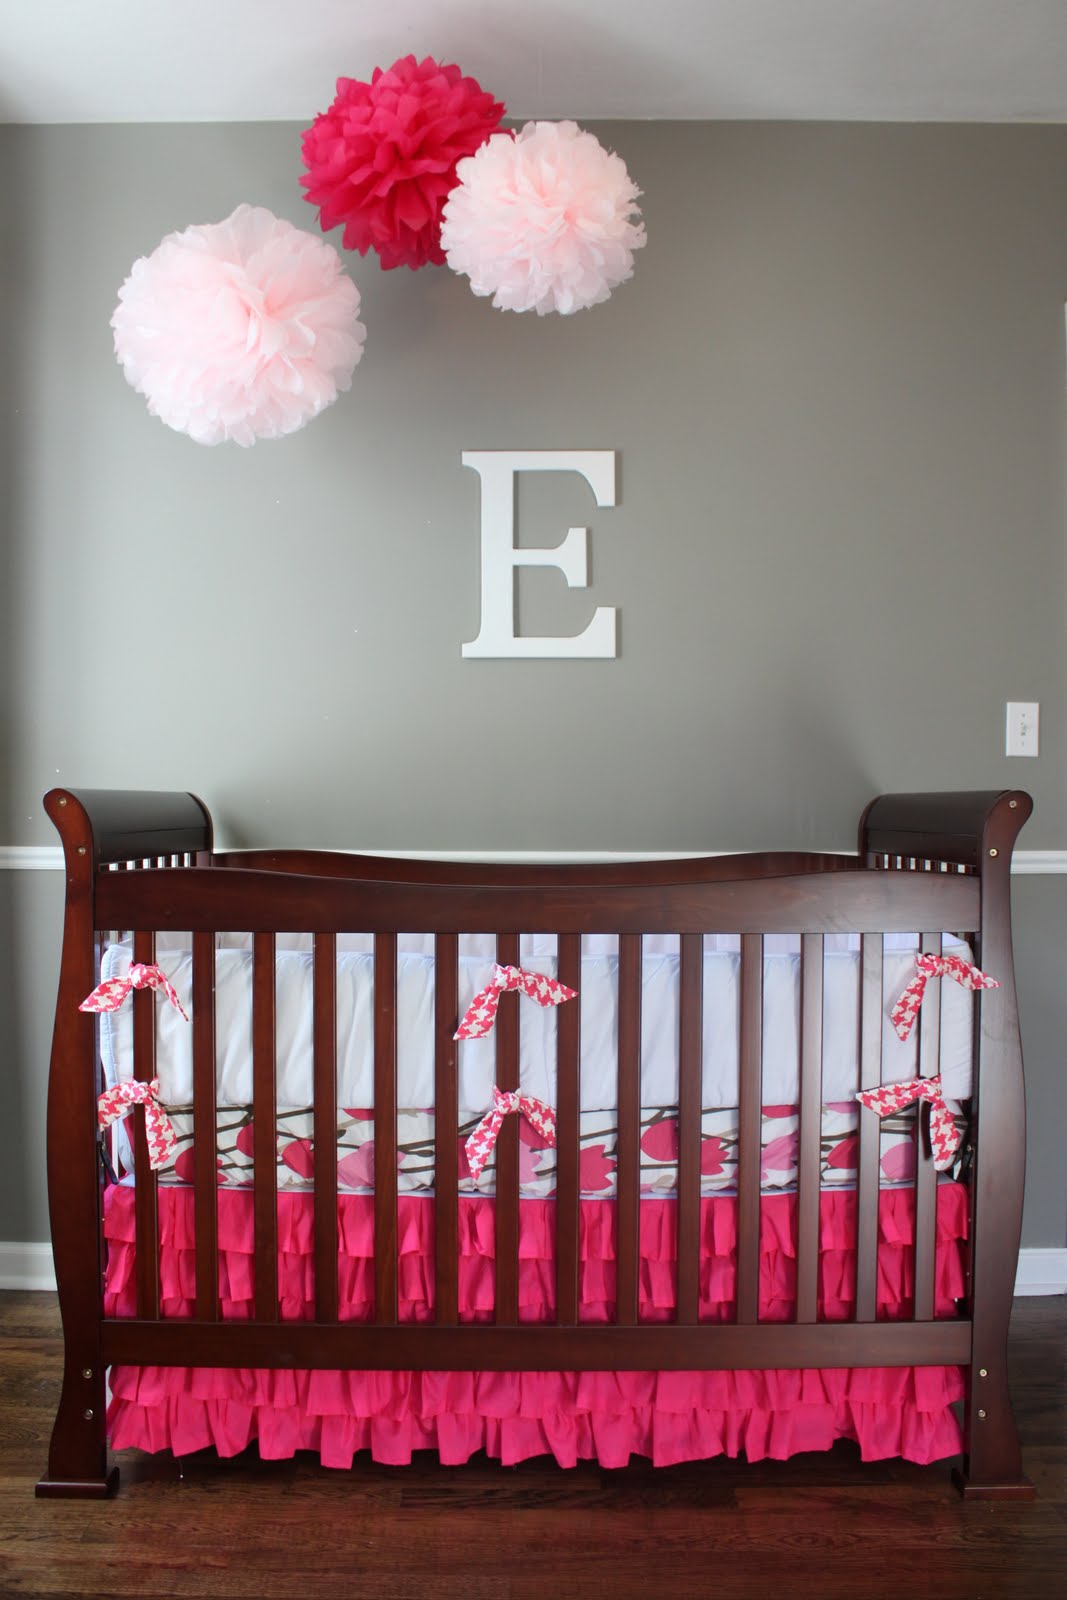 Oklahoma Nursery's http://salonetoktok.com/2/cute-girl-nurseries